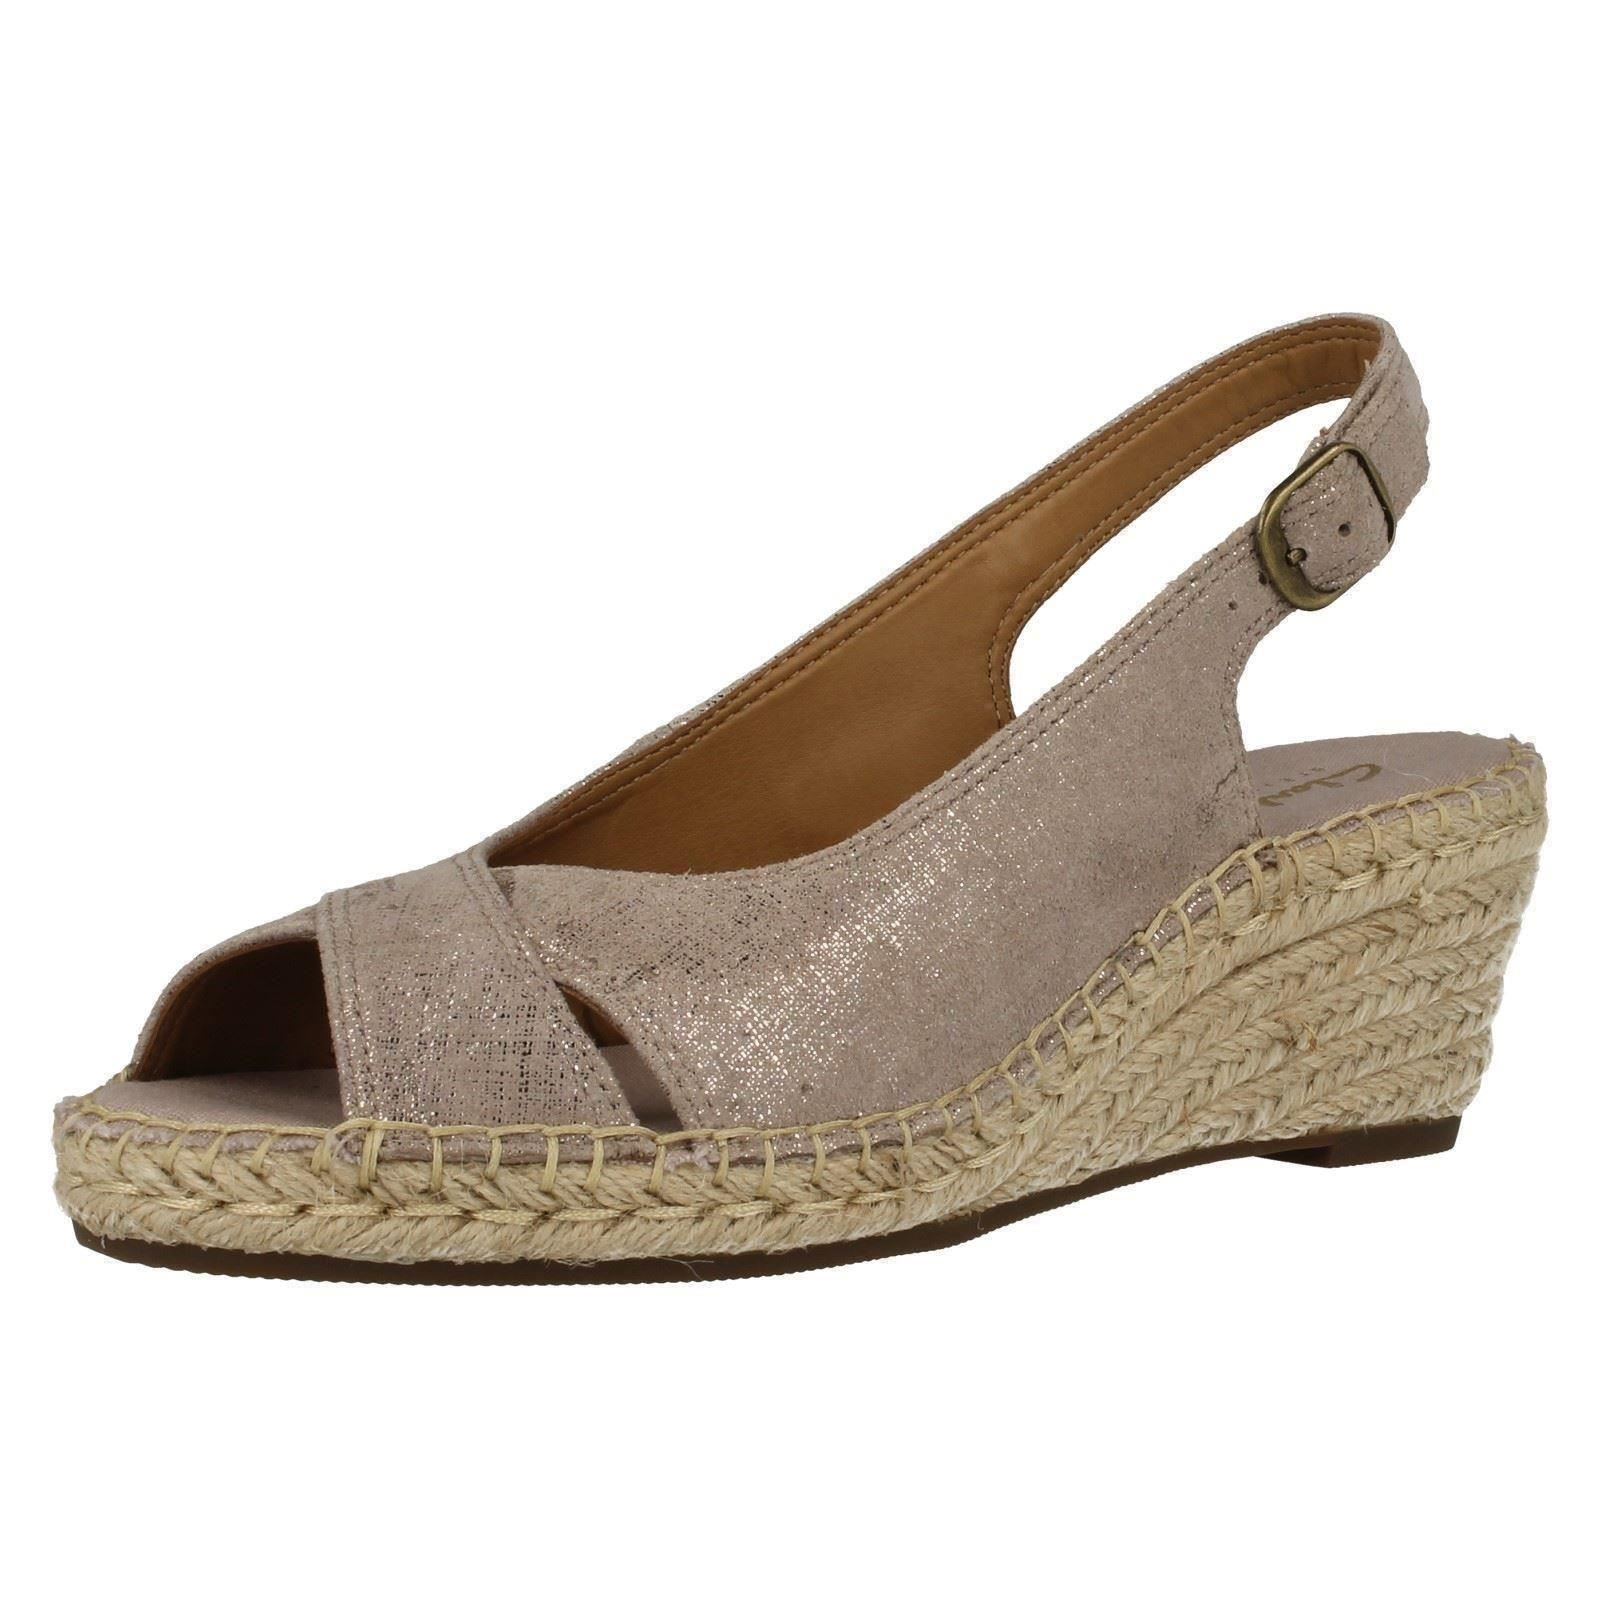 fac8735b5fb Ladies Clarks Sling Back Wedge Sandals Petrina Leigh Light Tan Suede UK 3  D. About this product. Picture 1 of 9  Picture 2 of 9 ...